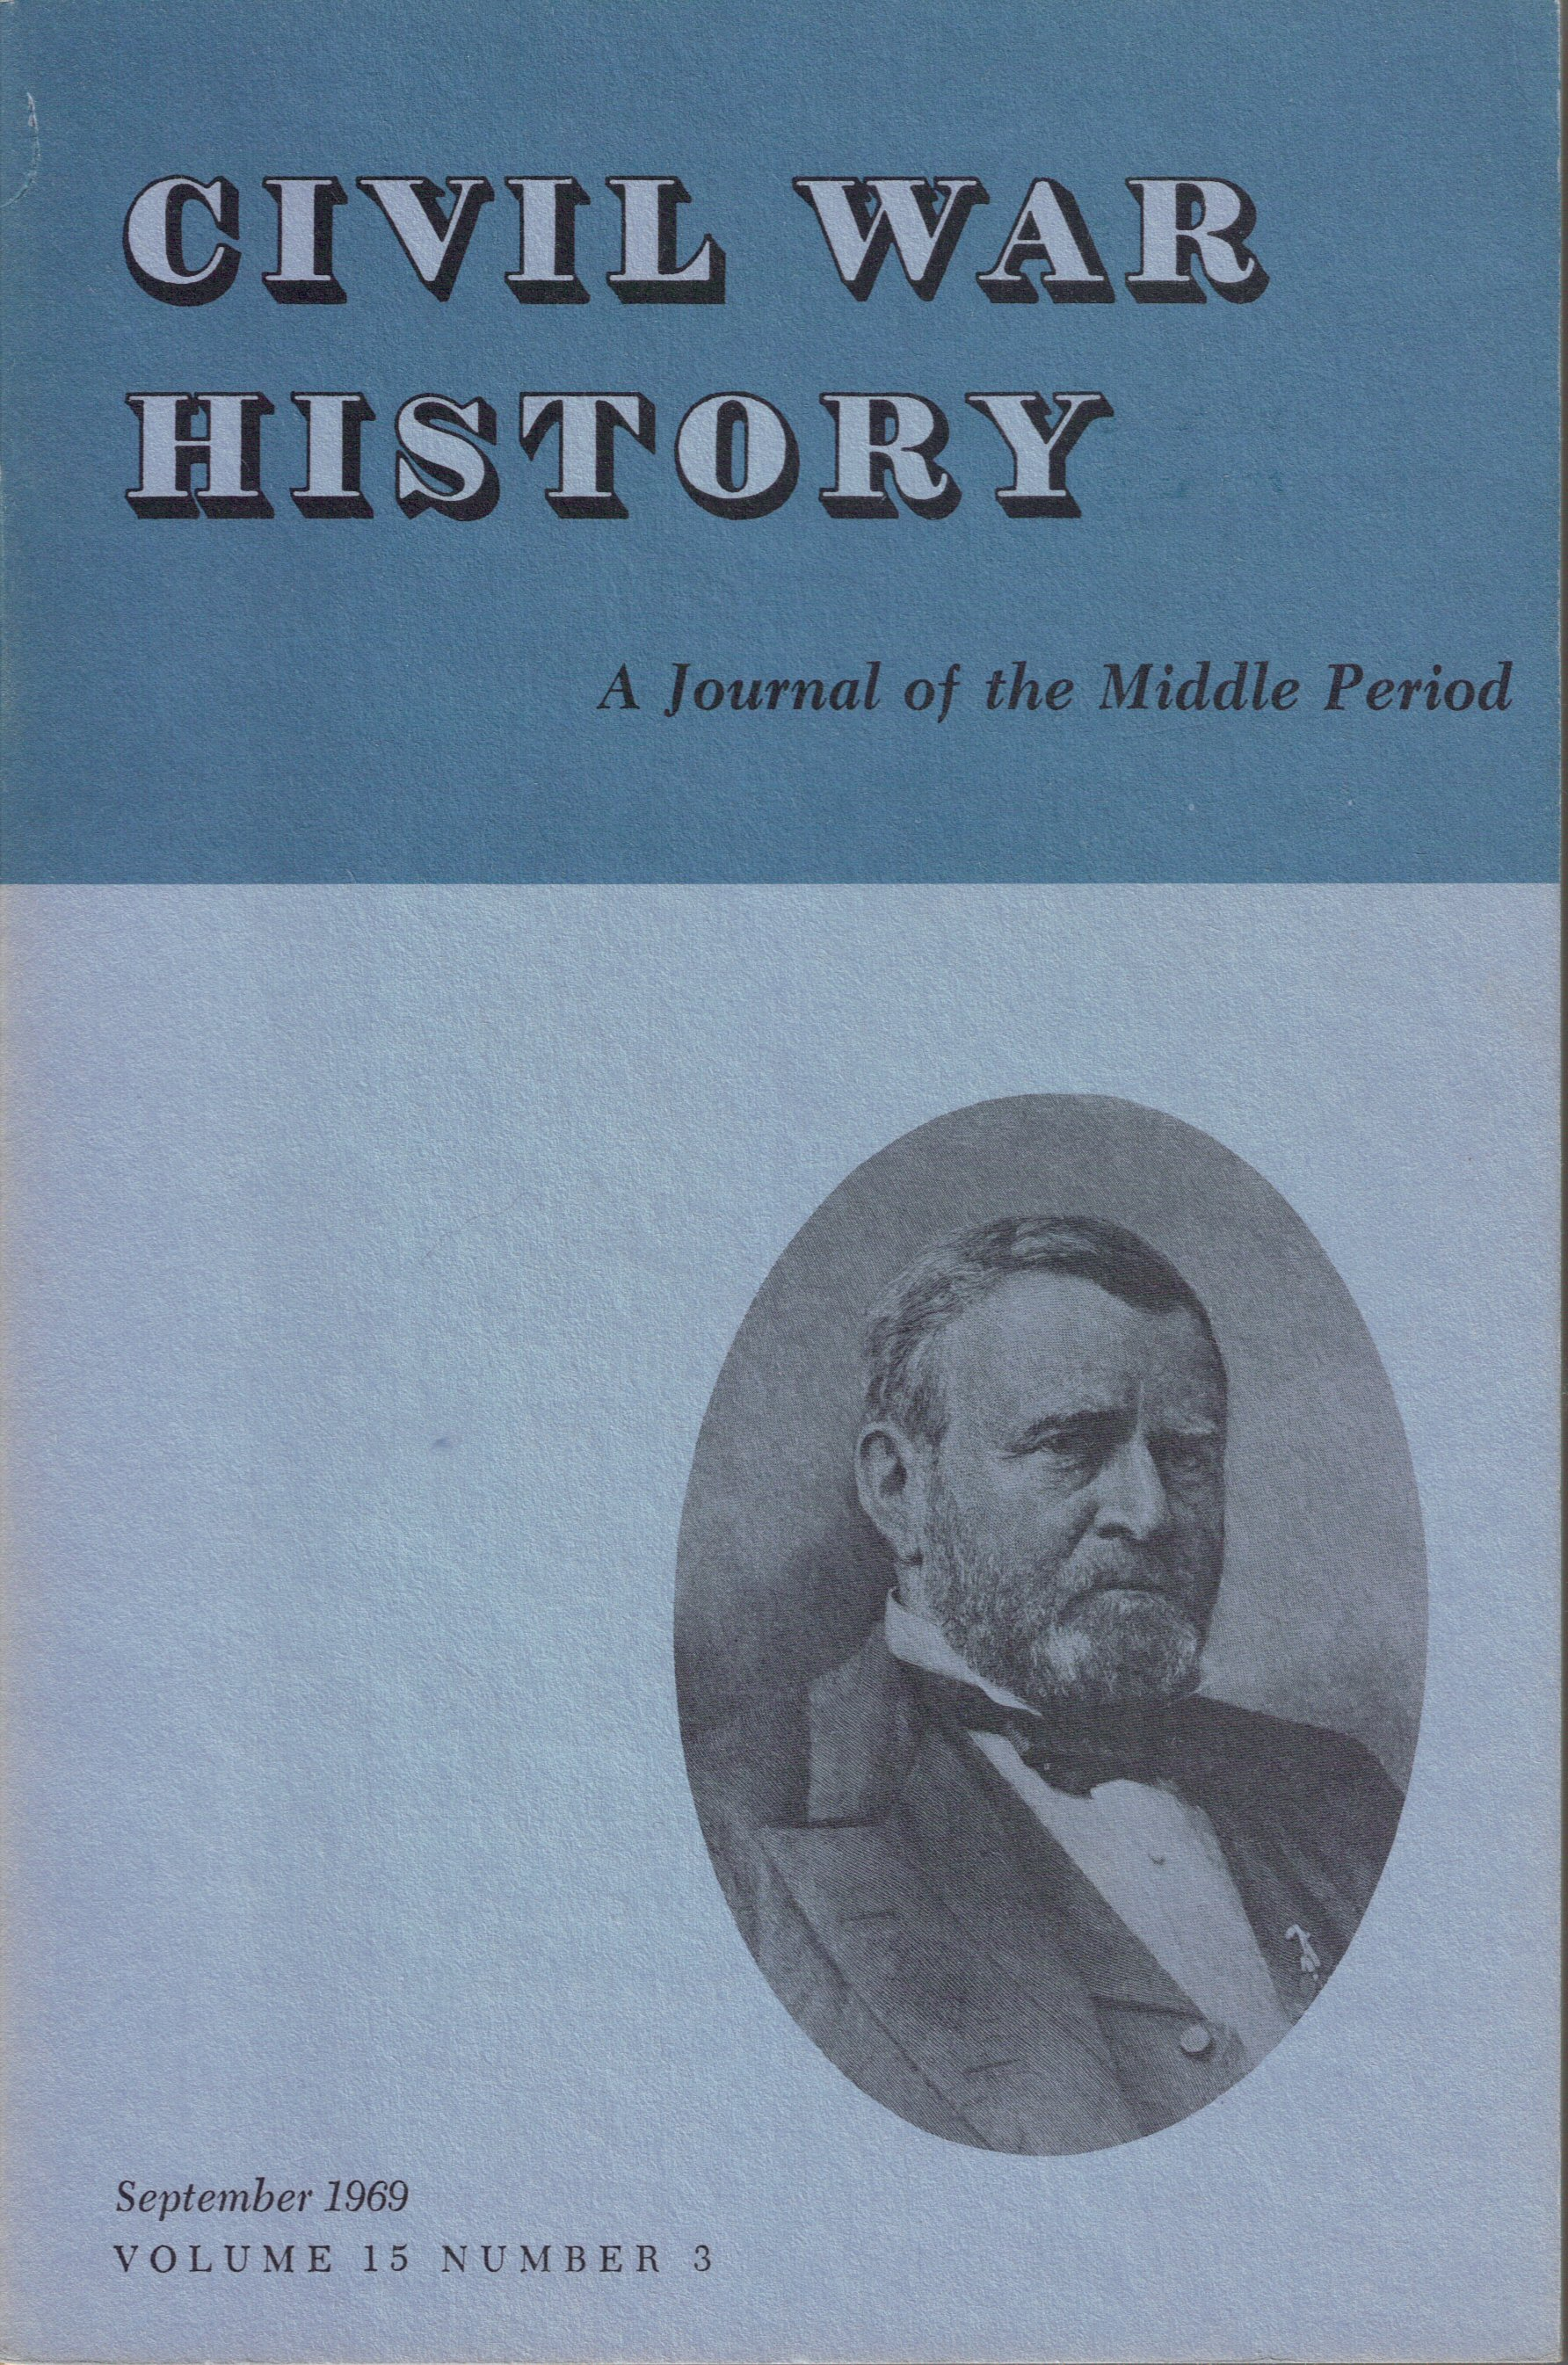 Civil War History, Volume 15, Number 3 (September 1969)